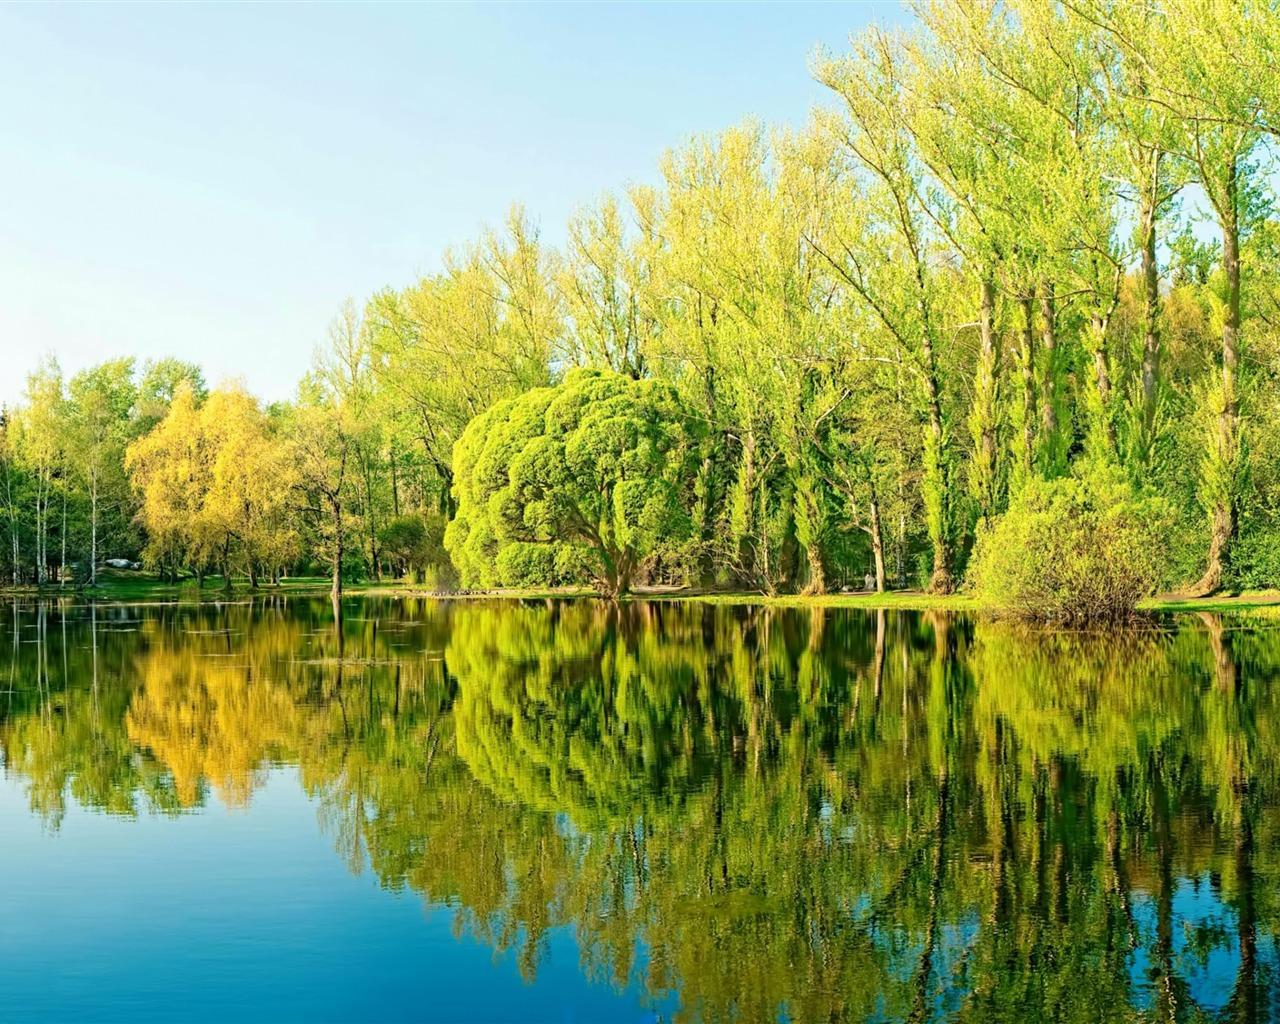 Forest summer sunshine trees lake reflection - 1280x1024 wallpaper download